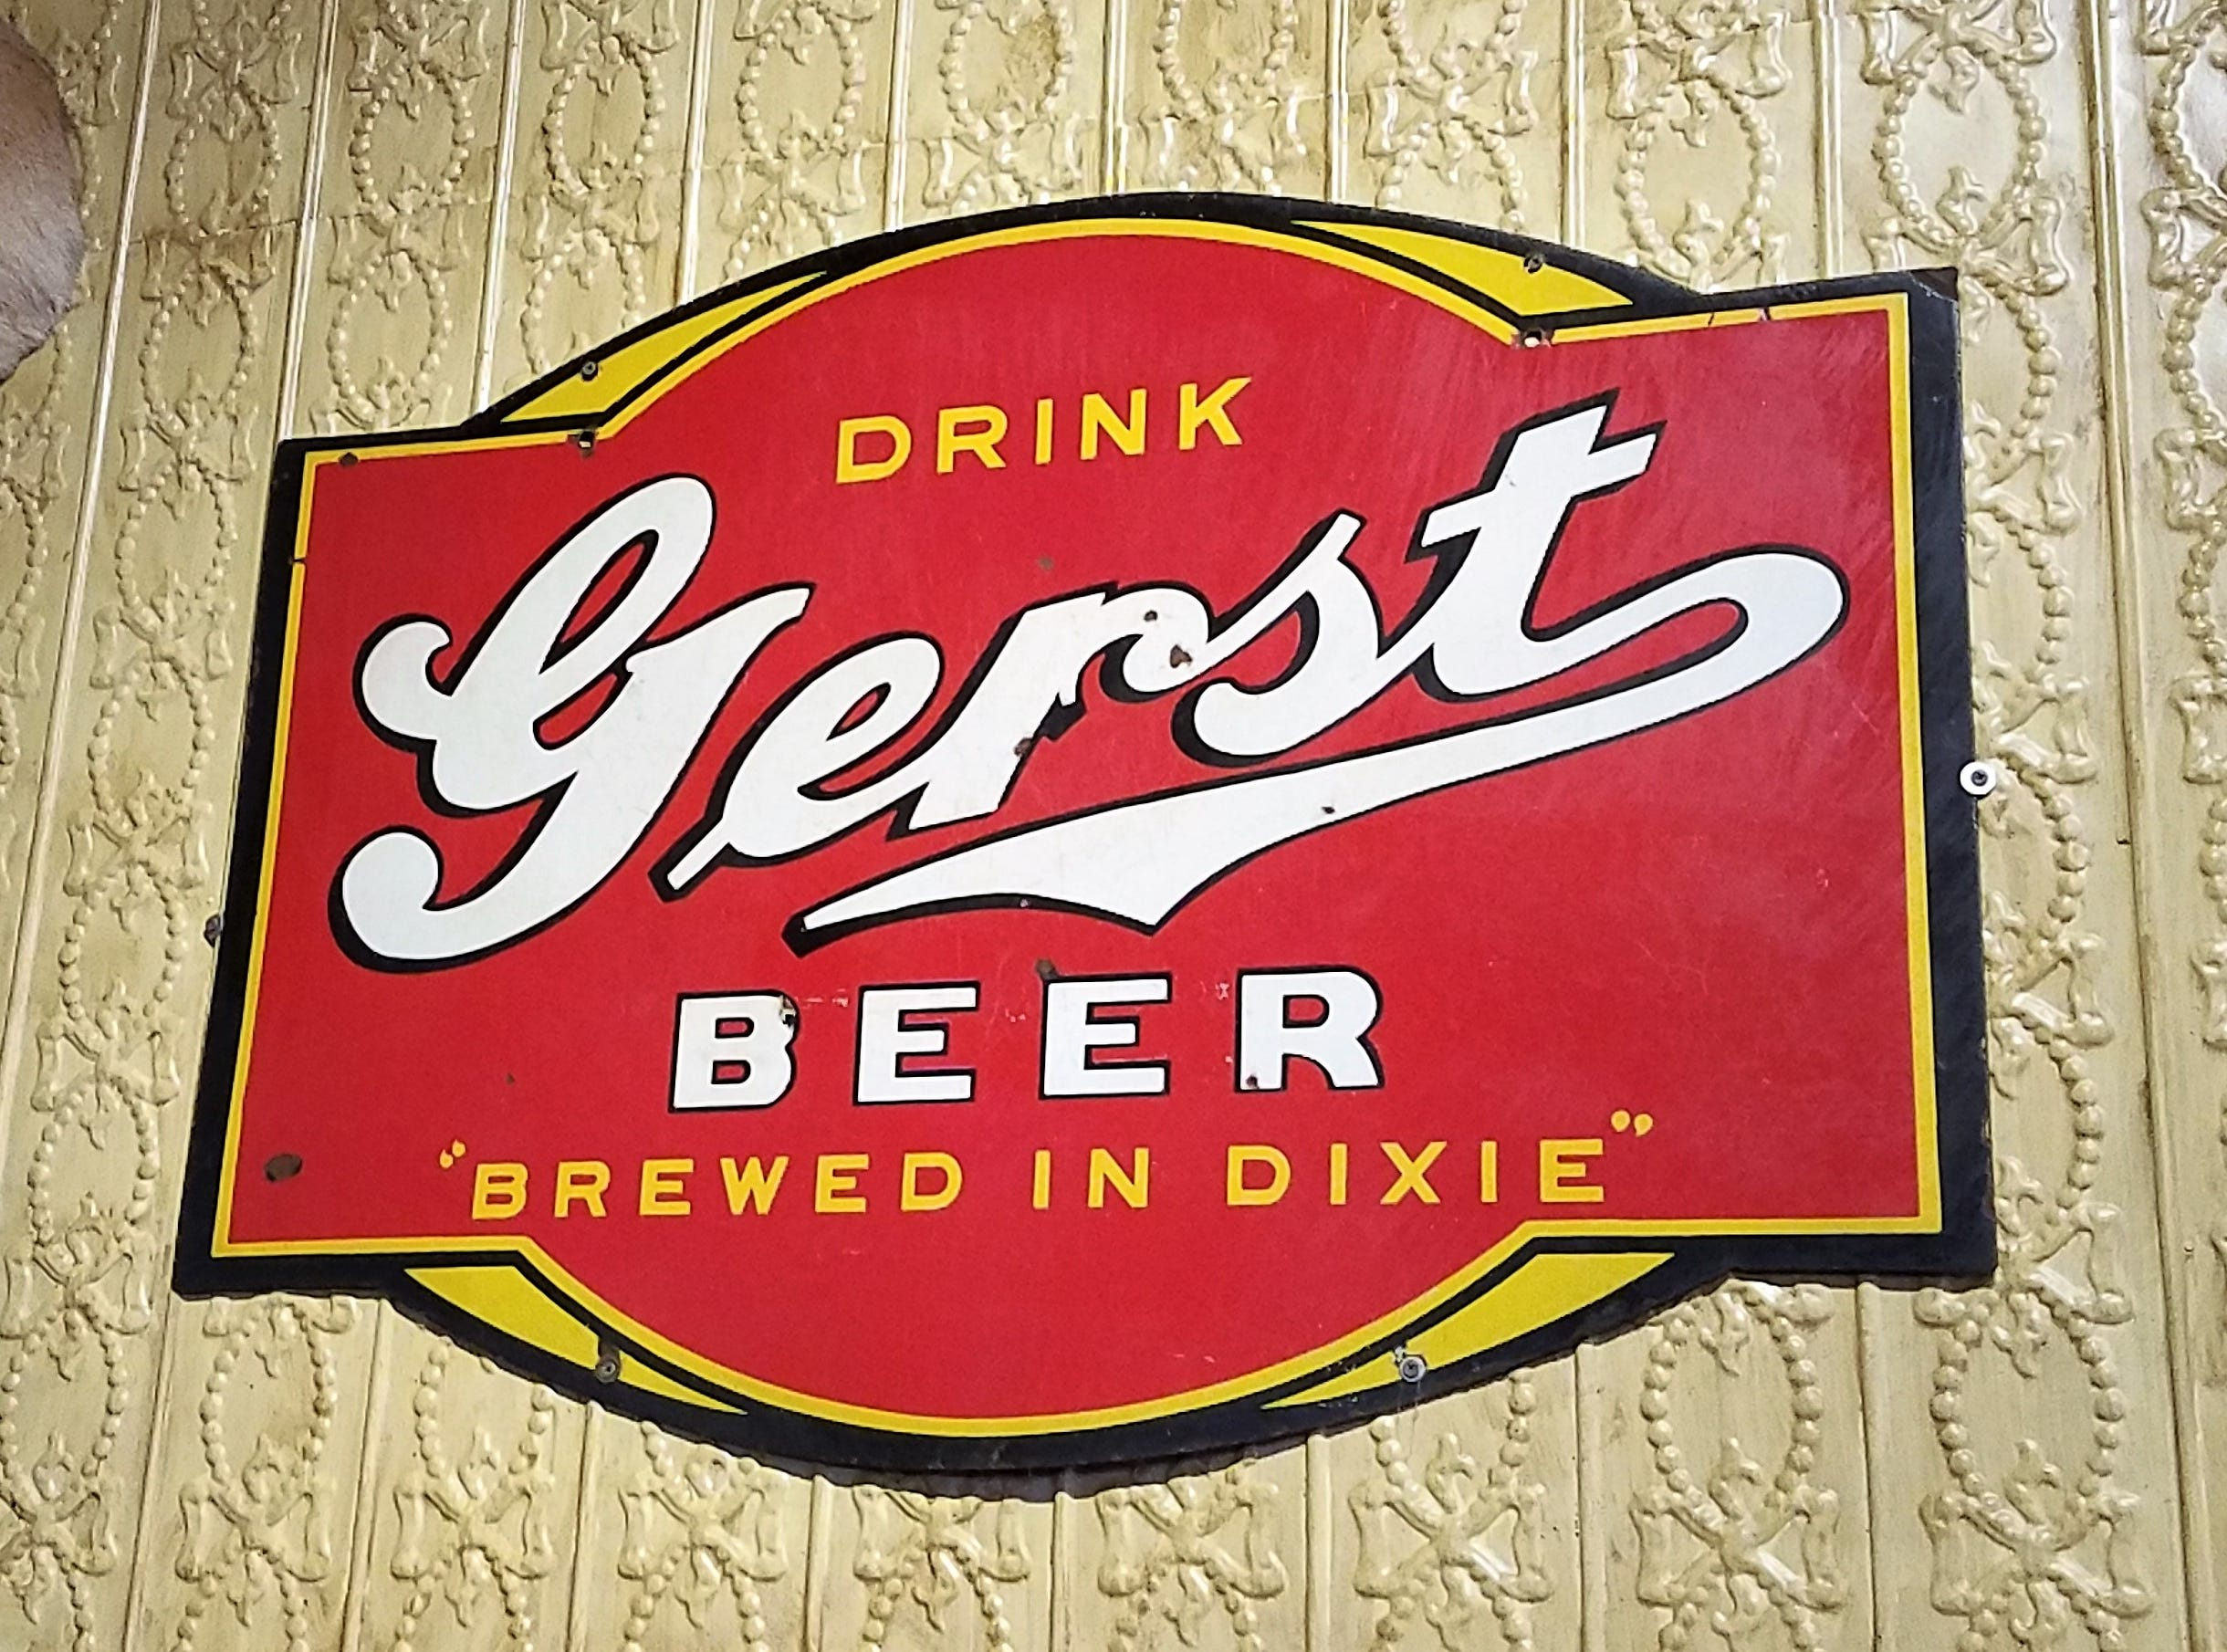 Gerst Hause Amber Ale remains the most popular beer at the Gerst Haus.